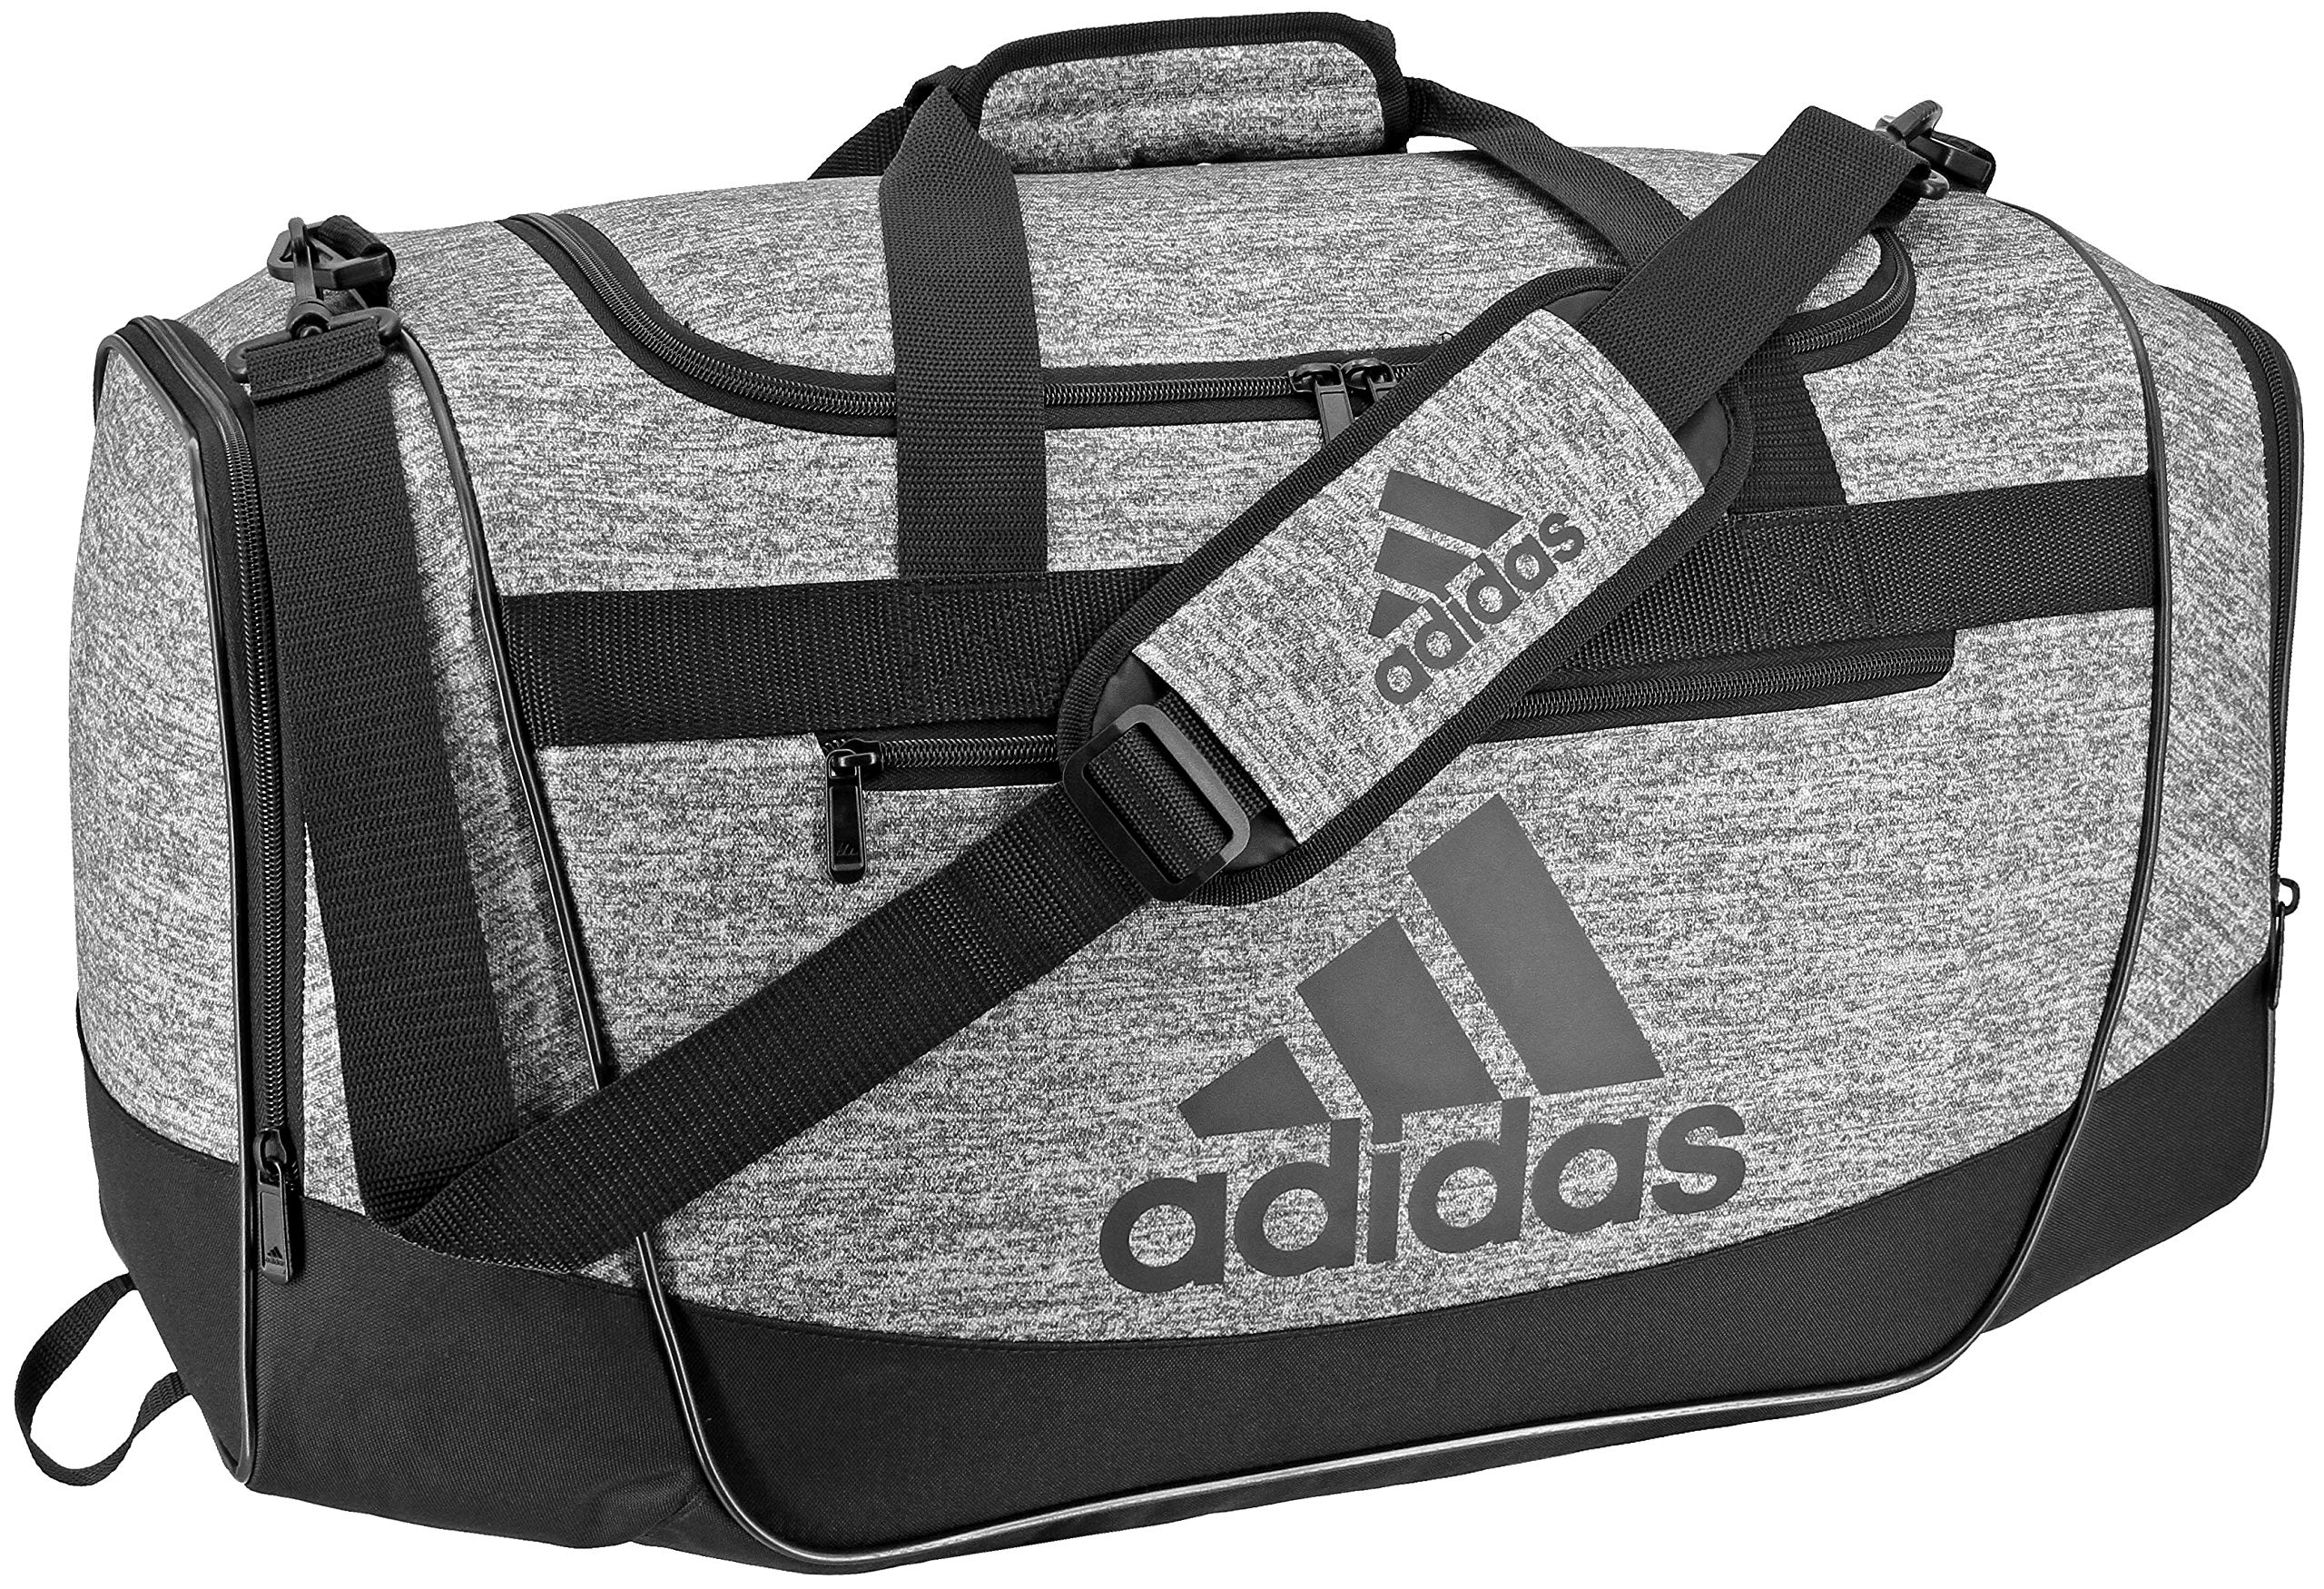 adidas Defender III medium duffel Bag, Onix Jersey/Black, One Size by adidas